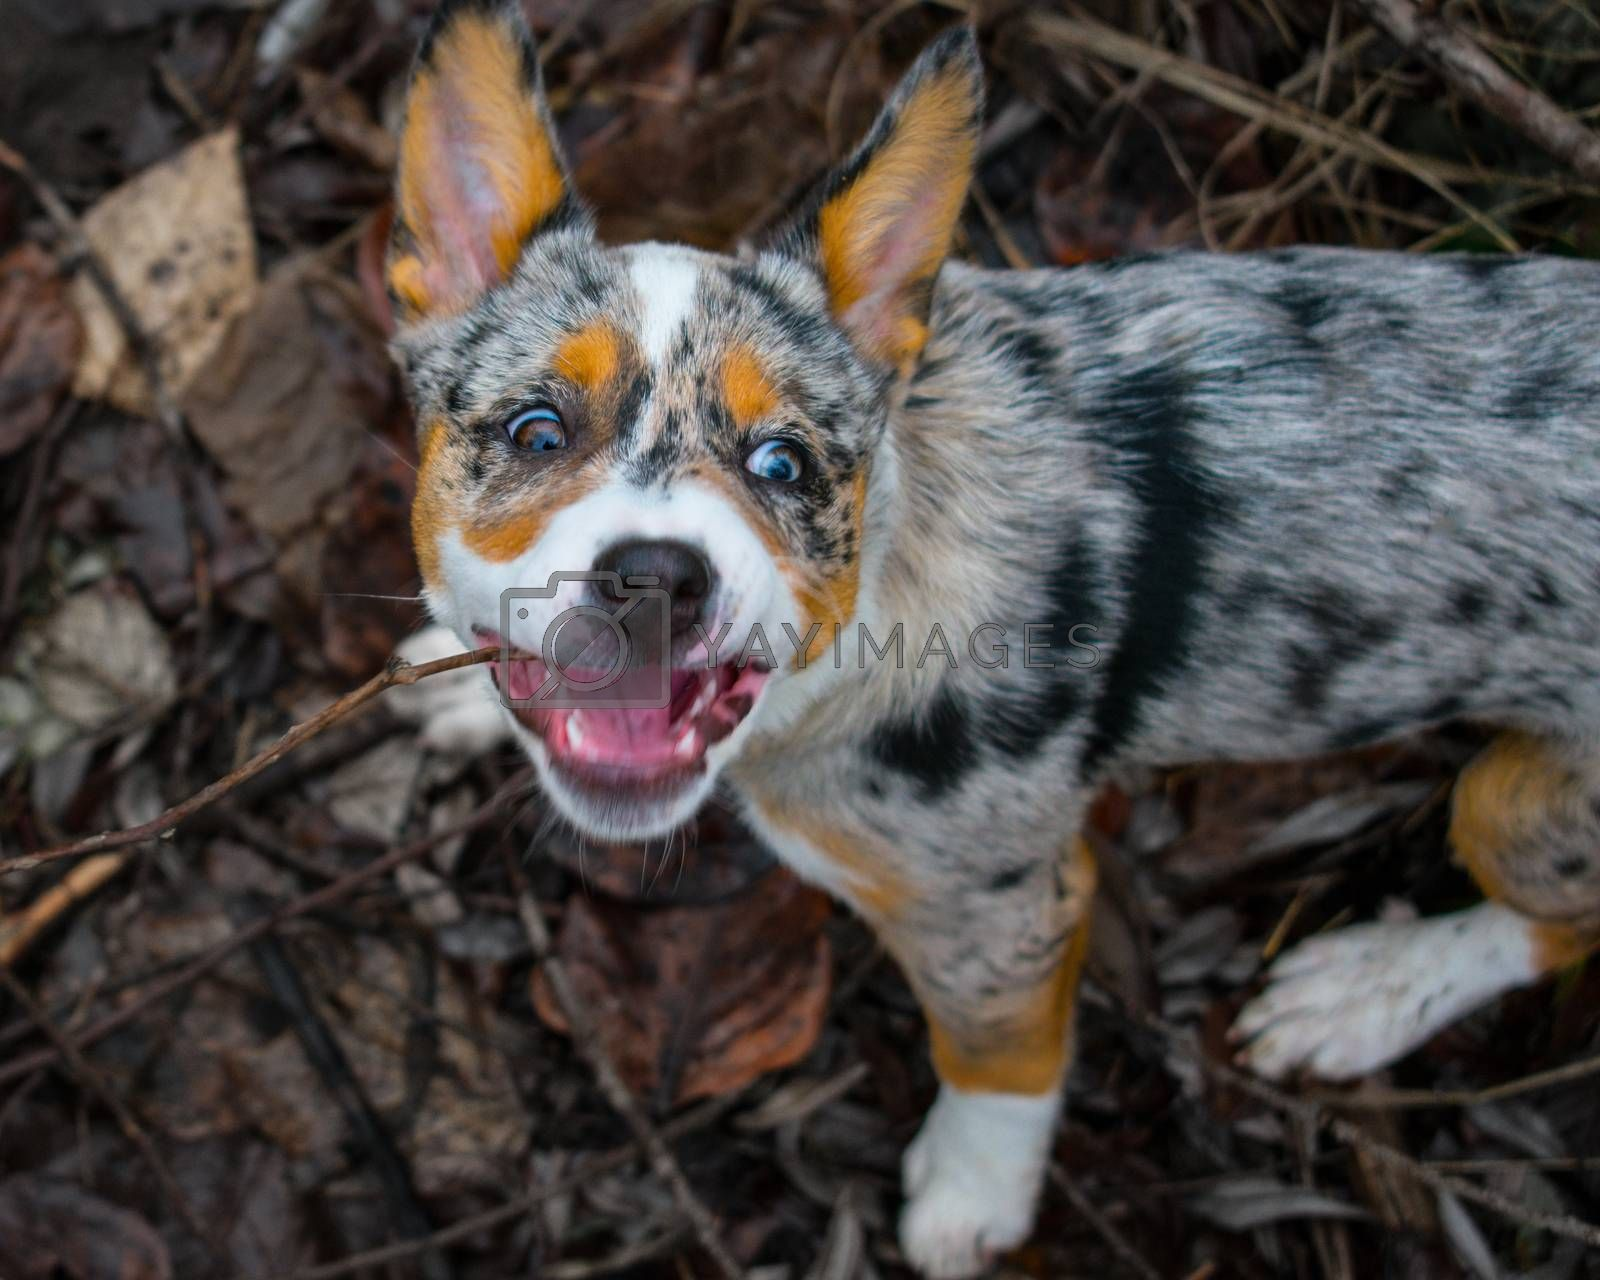 Dog with crazy eyes biting a stick in pile of autumn leaves changing color